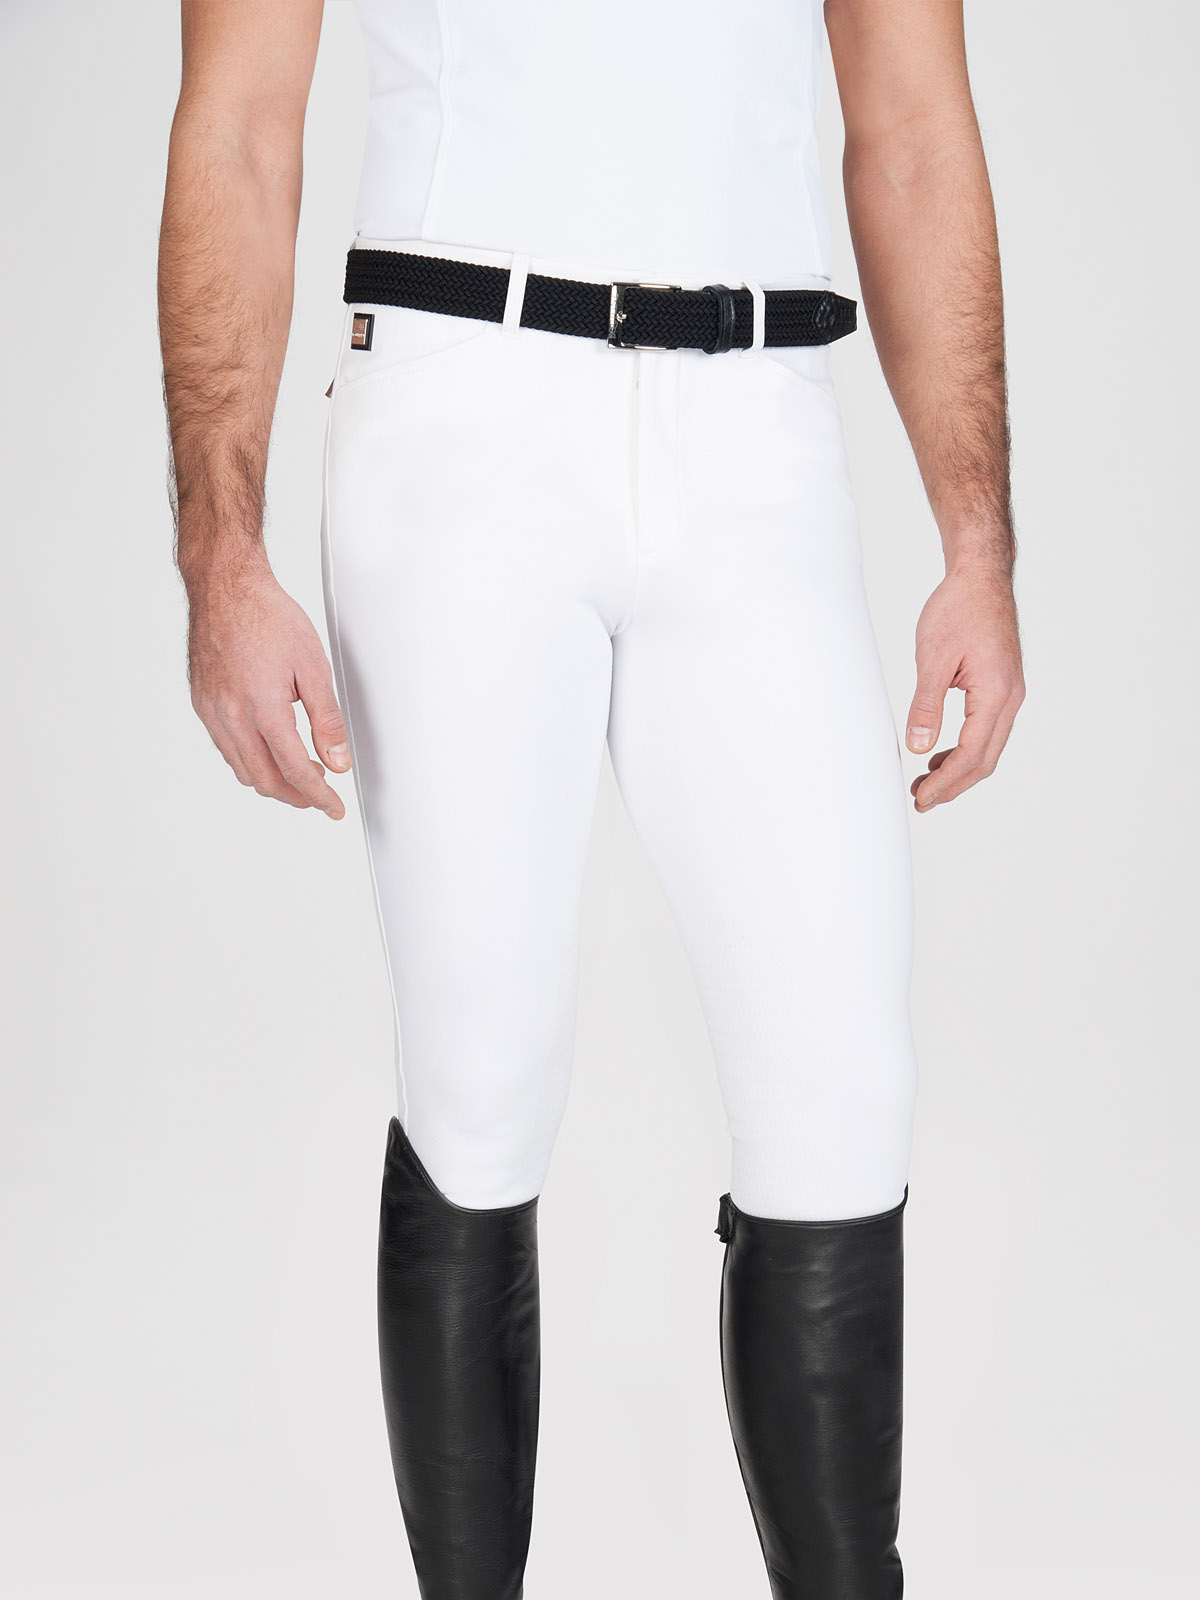 Willow men's knee grip riding breeches in white